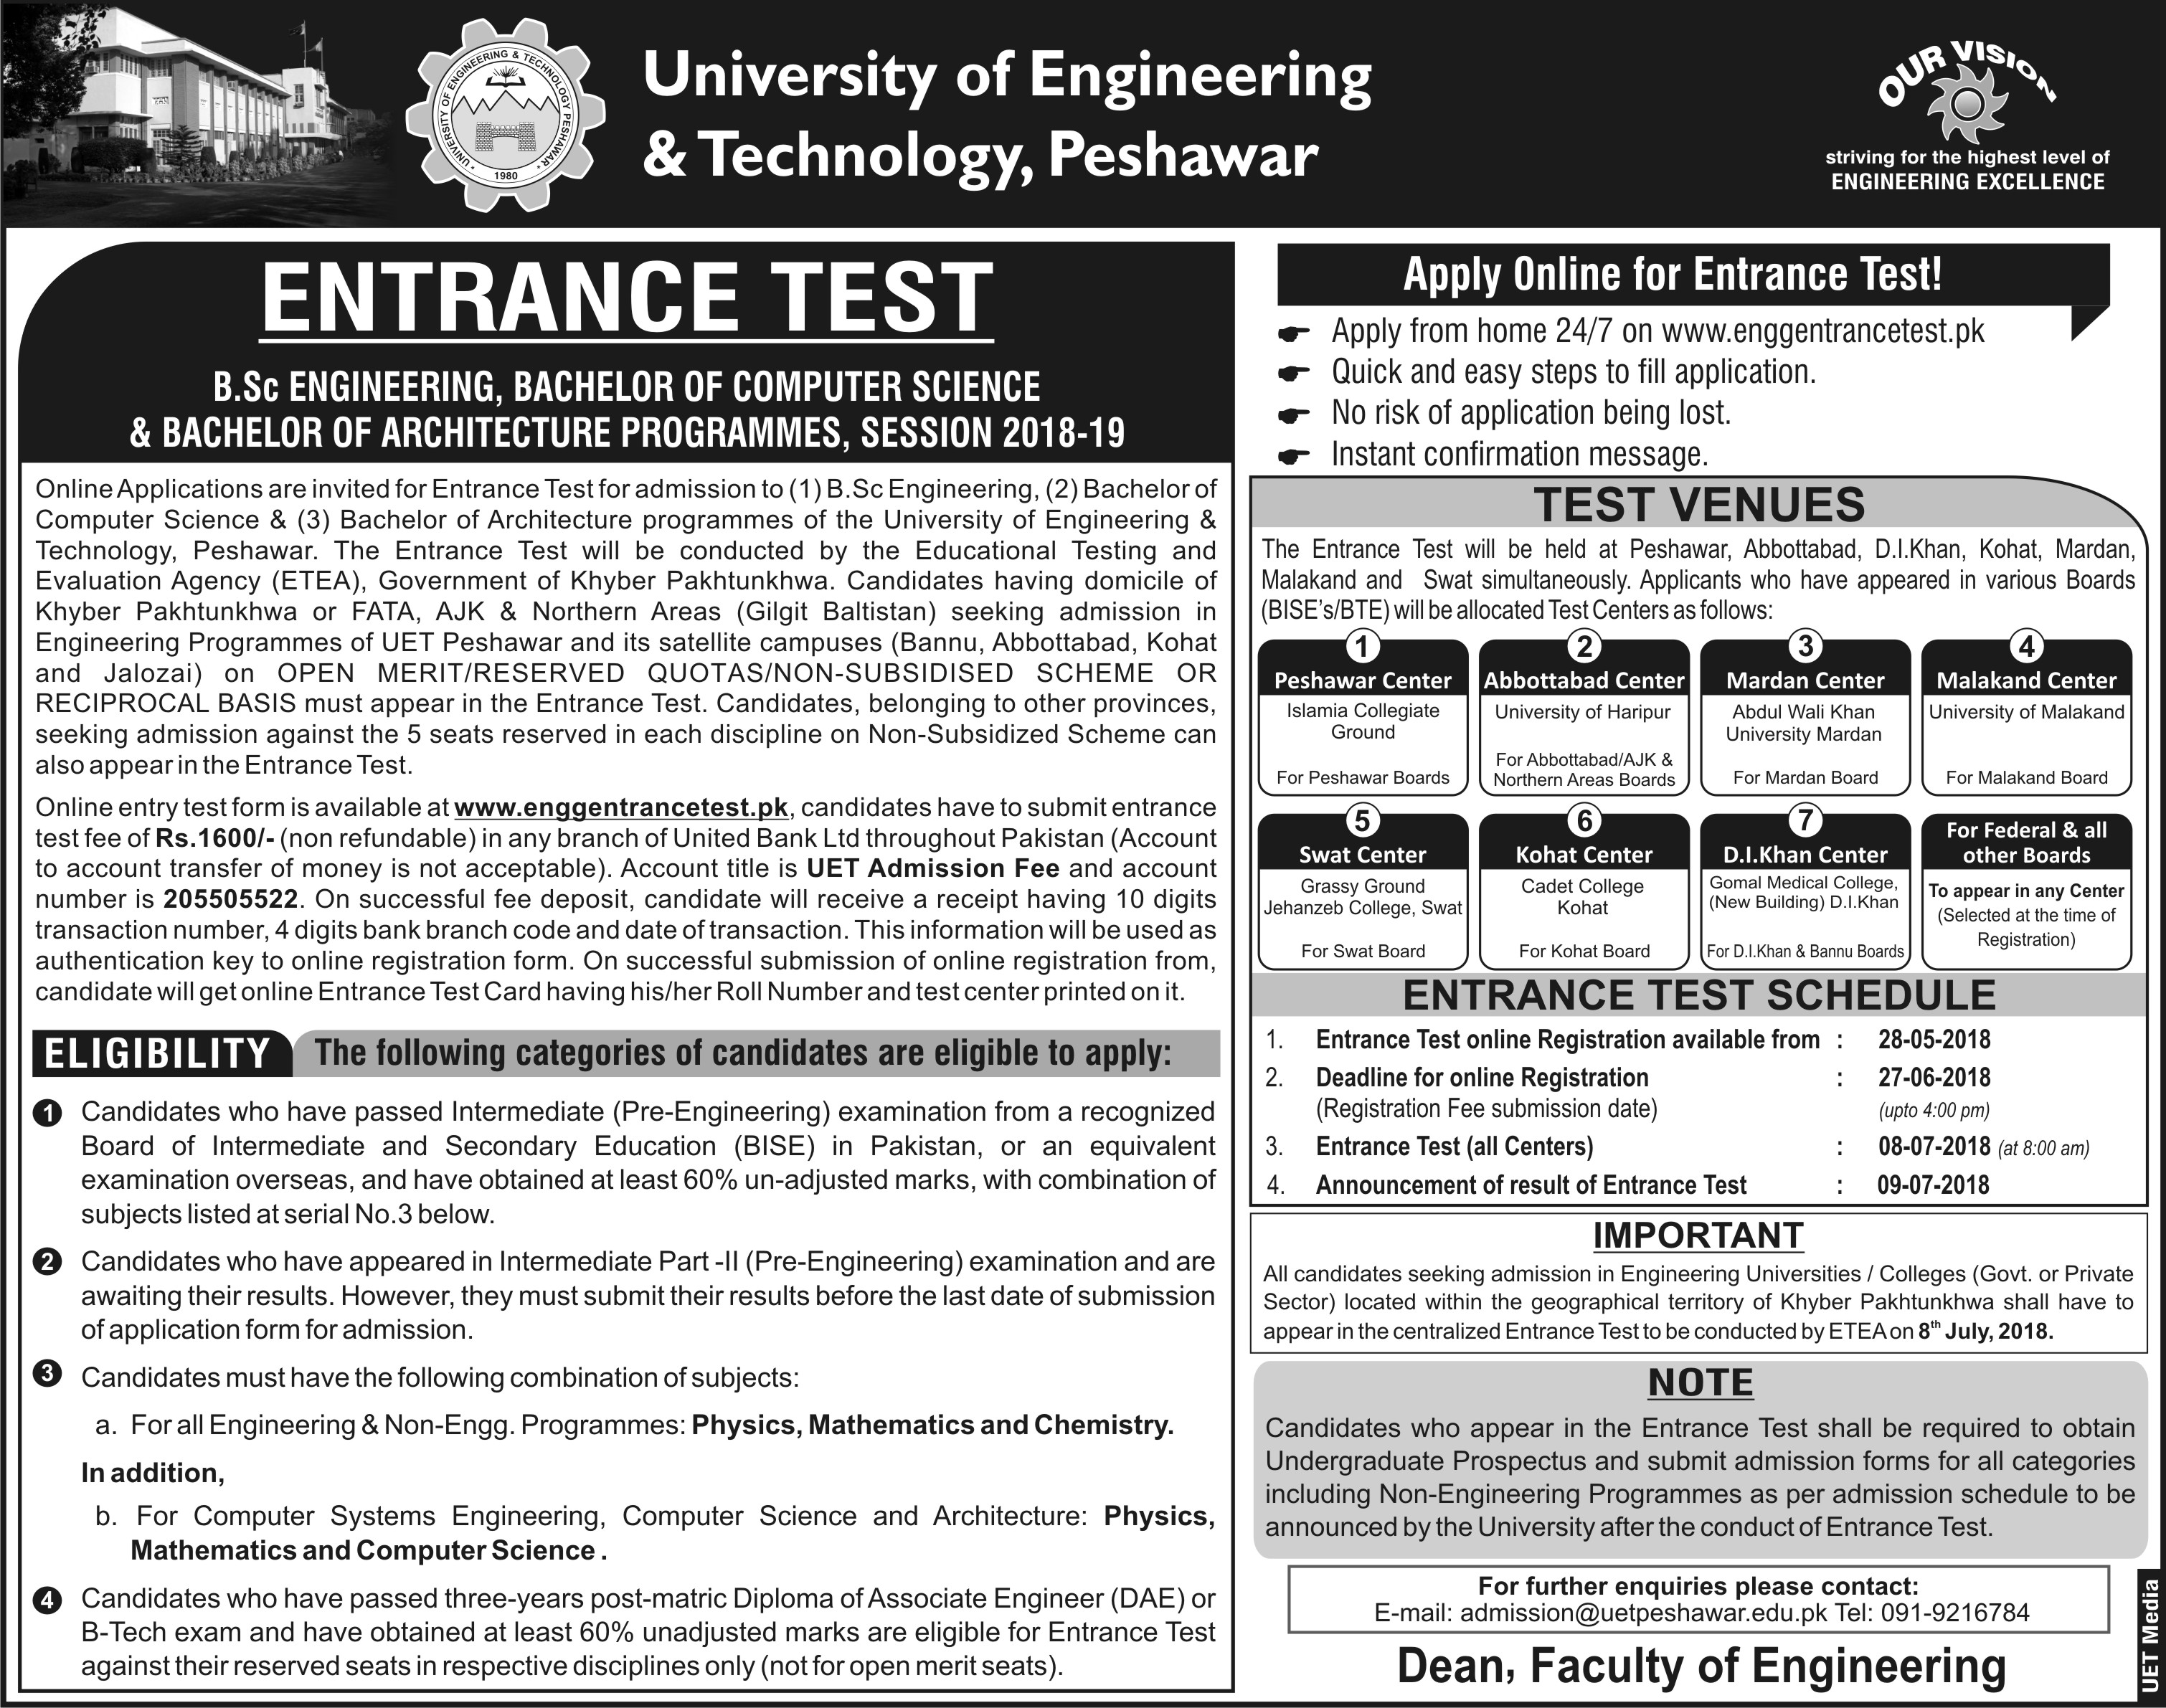 University of Engineering & Technology (UET), Peshawar – Admissions 2018